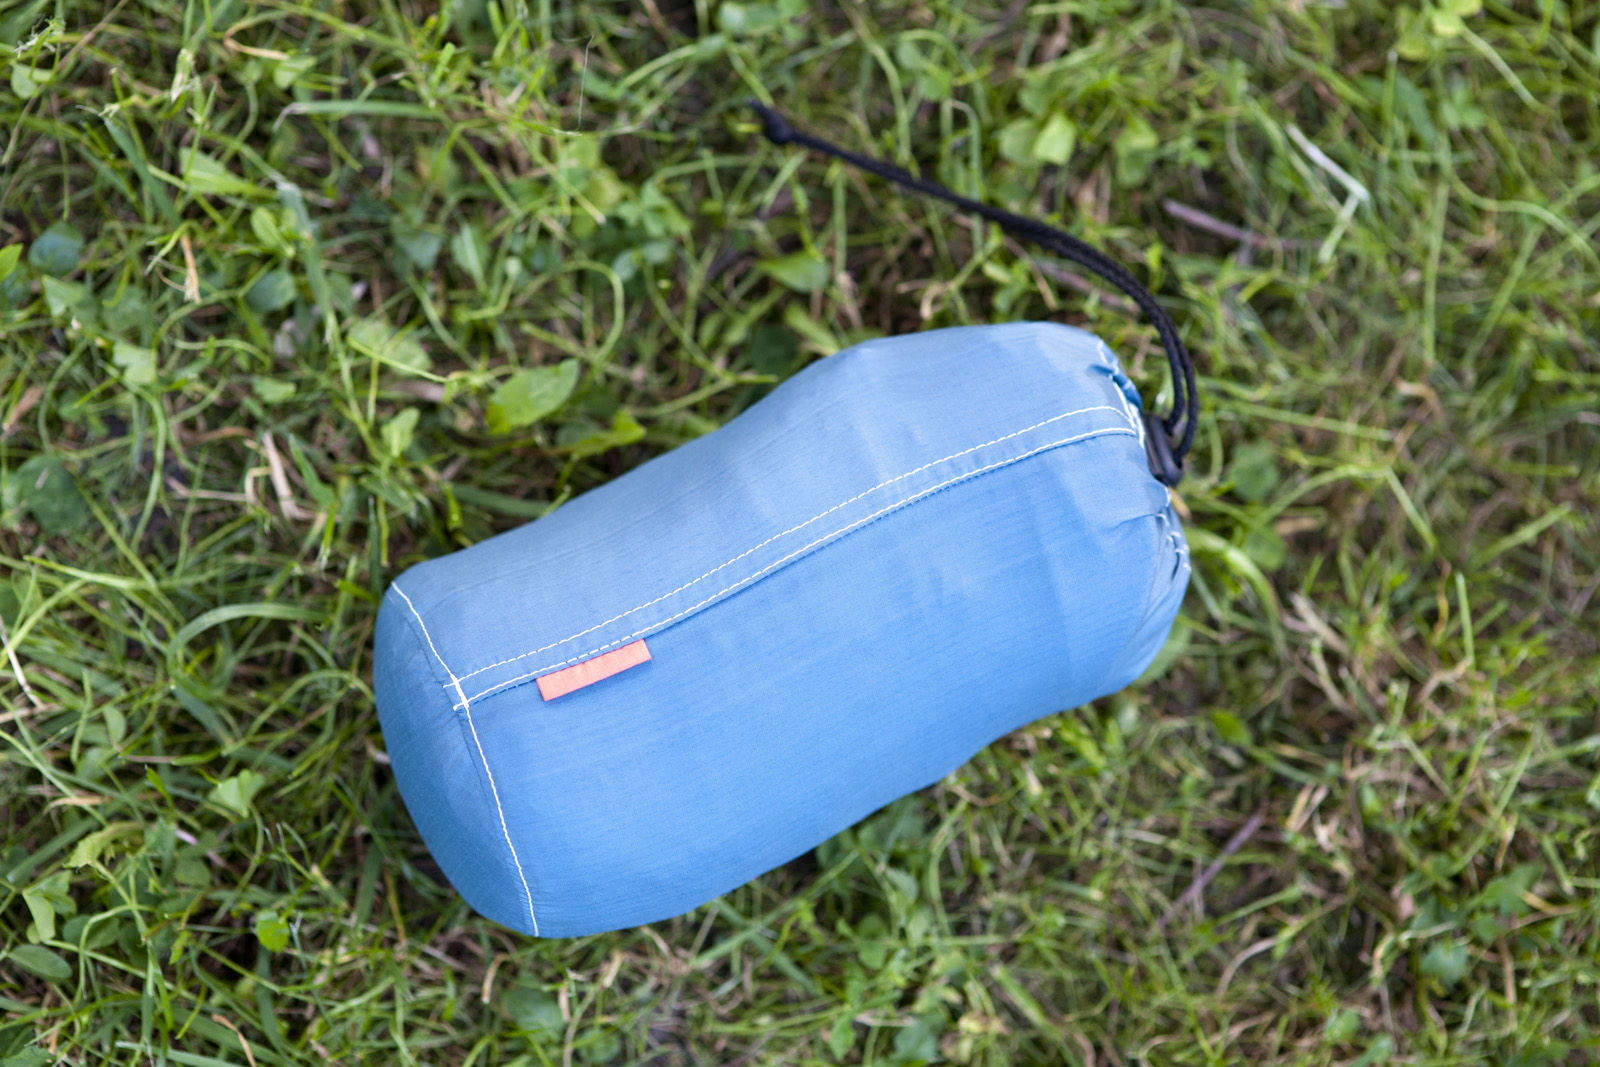 hamac ripstop blue-orange saculet 3